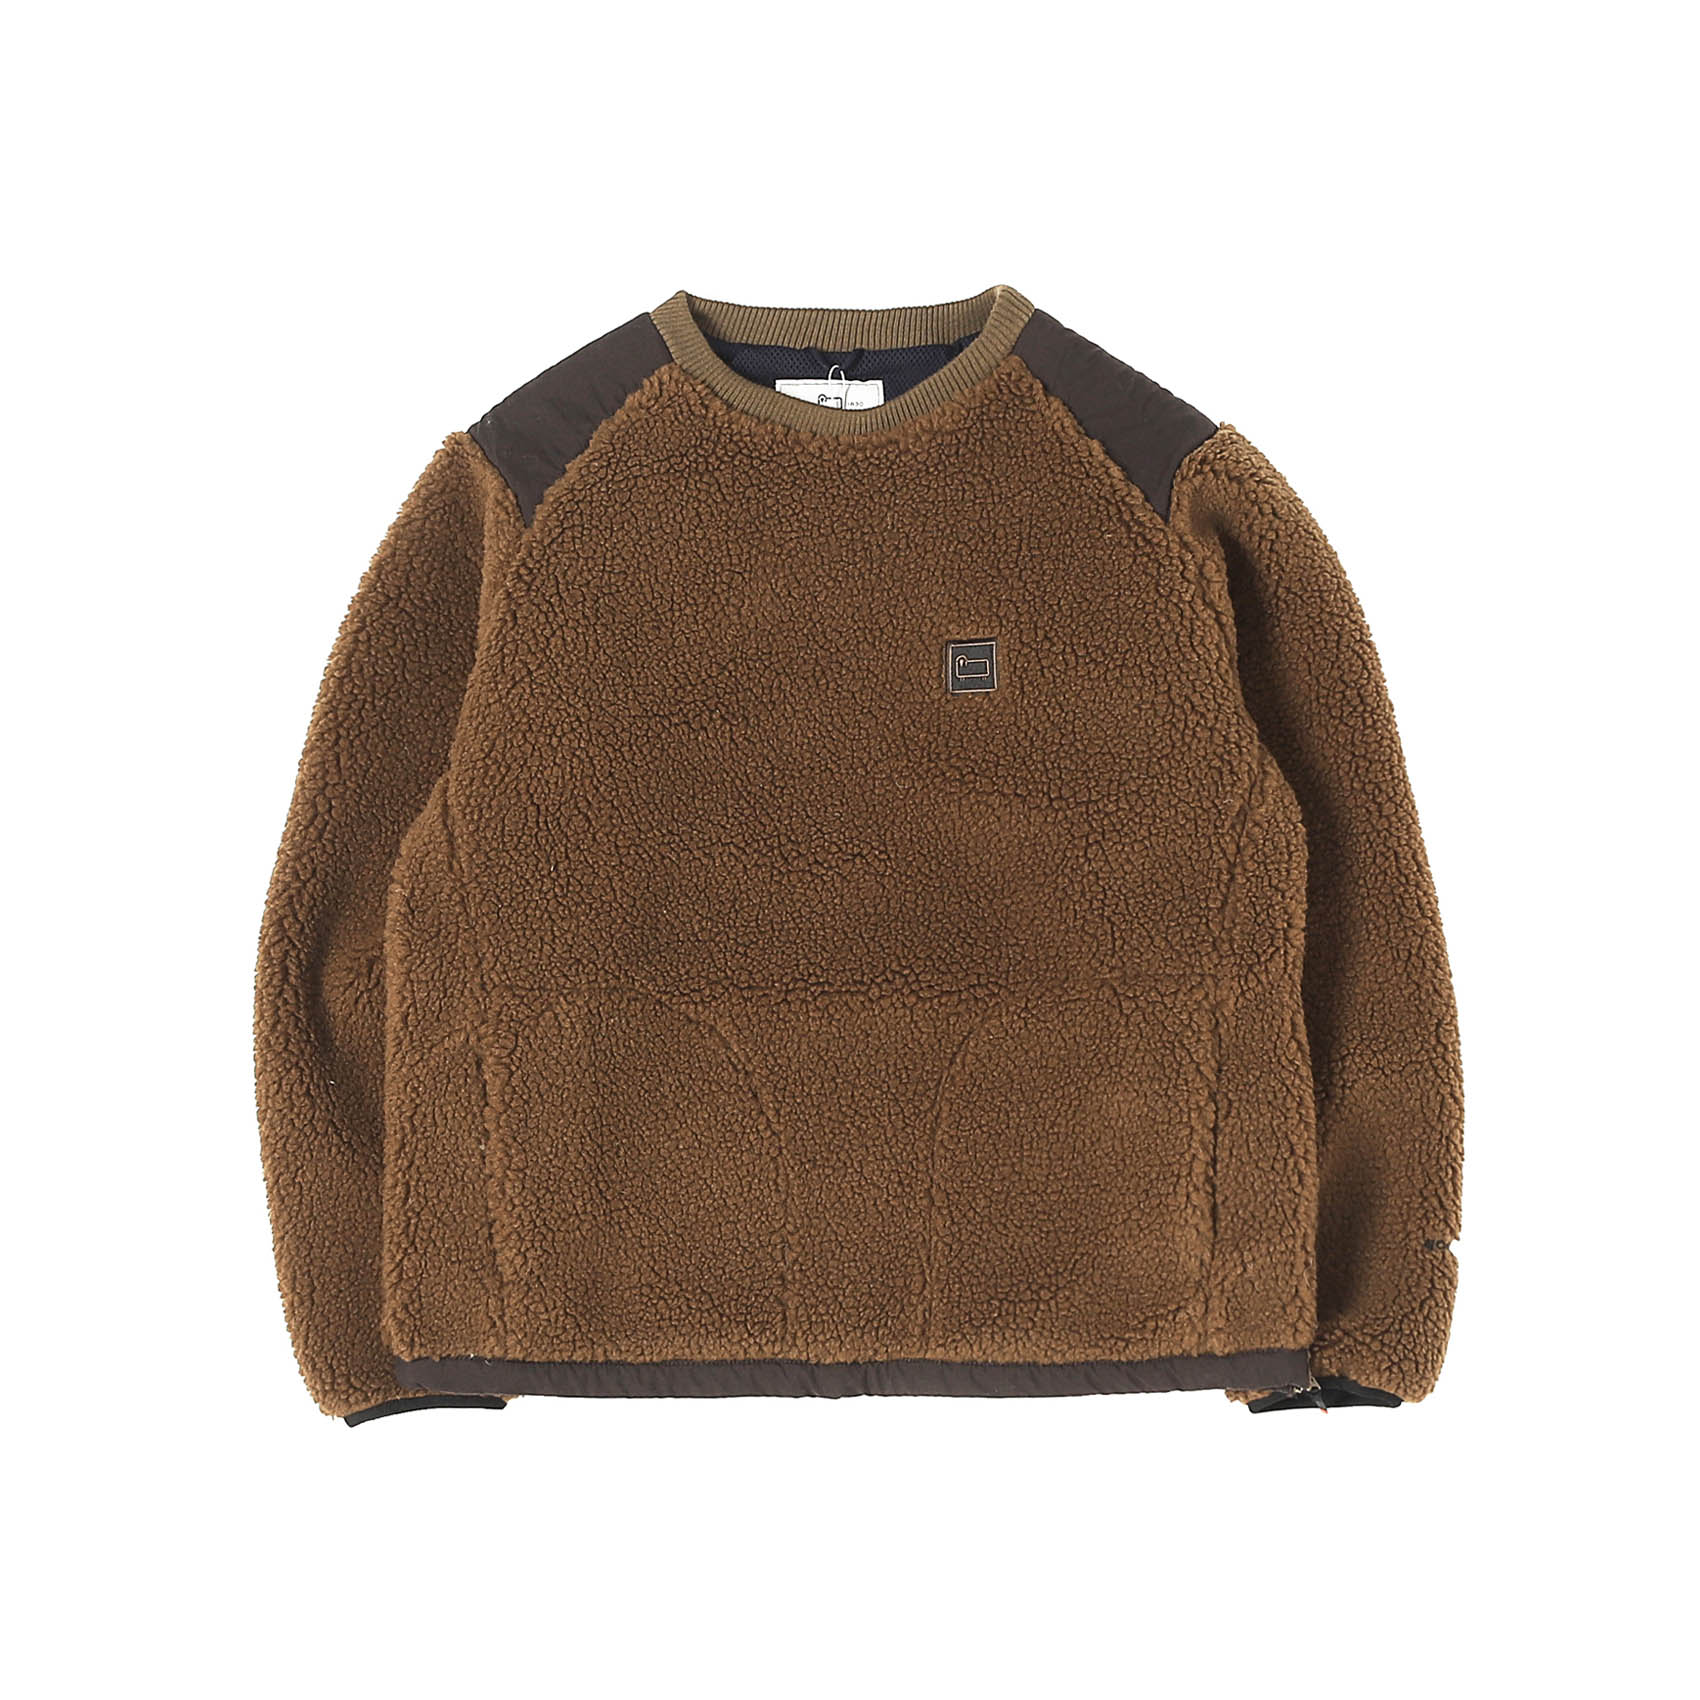 TERRA PILE FLEECE PULLOVER - BROWN